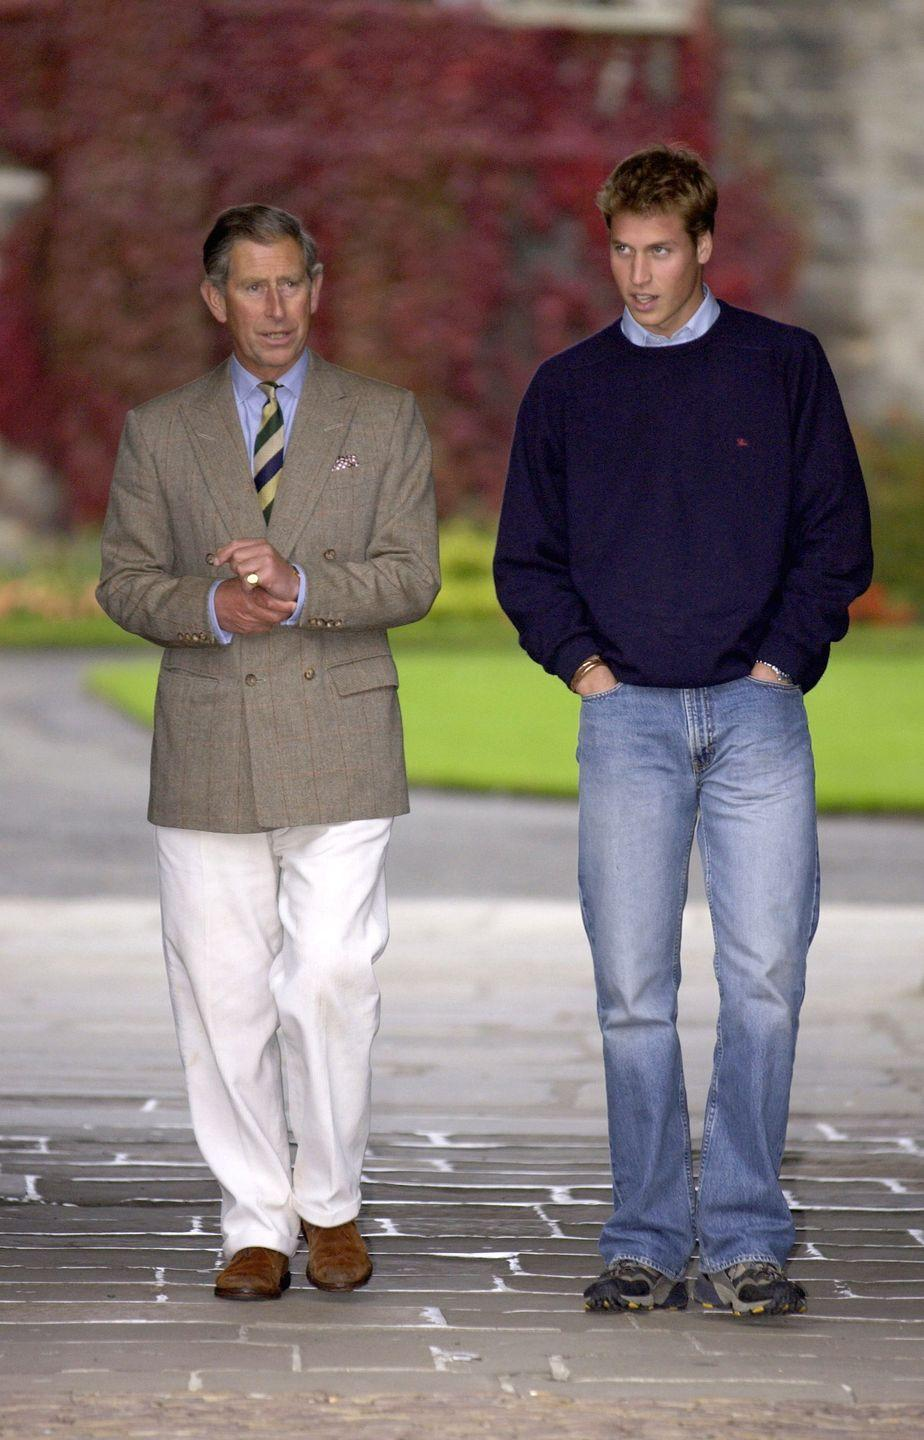 <p>Get a load of this hunky Prince-off-duty look! In 2001, Prince Charles and Prince William were photographed visiting St. Andrews University in Scotland, where William attended. Hiking shoes? Check. Faded boot cut jeans? Check. Devastatingly handsome stare? CHECK.</p>